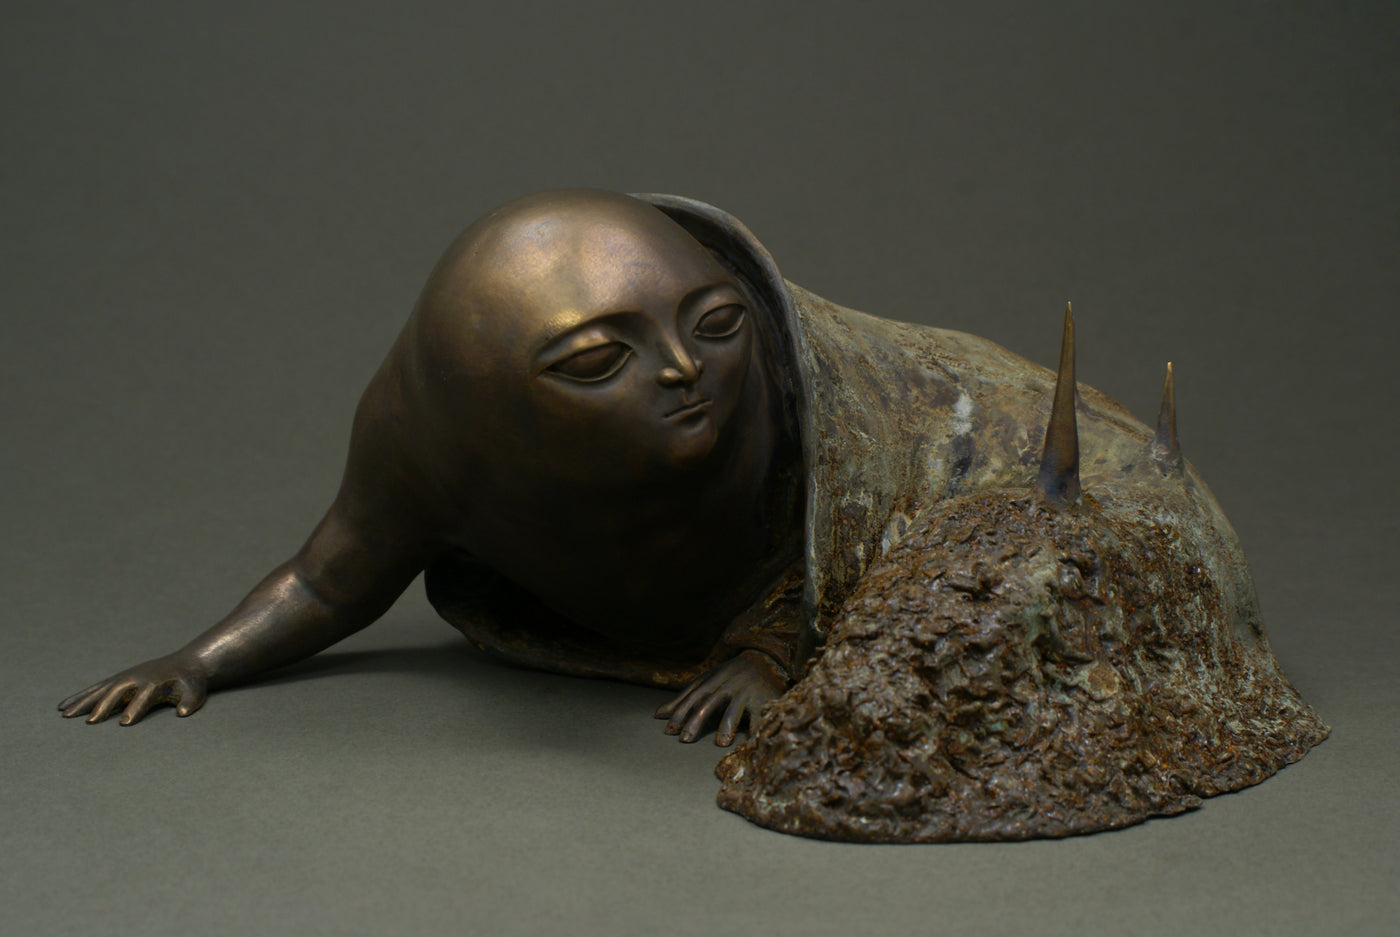 Bronze sculpture art  by Aurelija Simkute